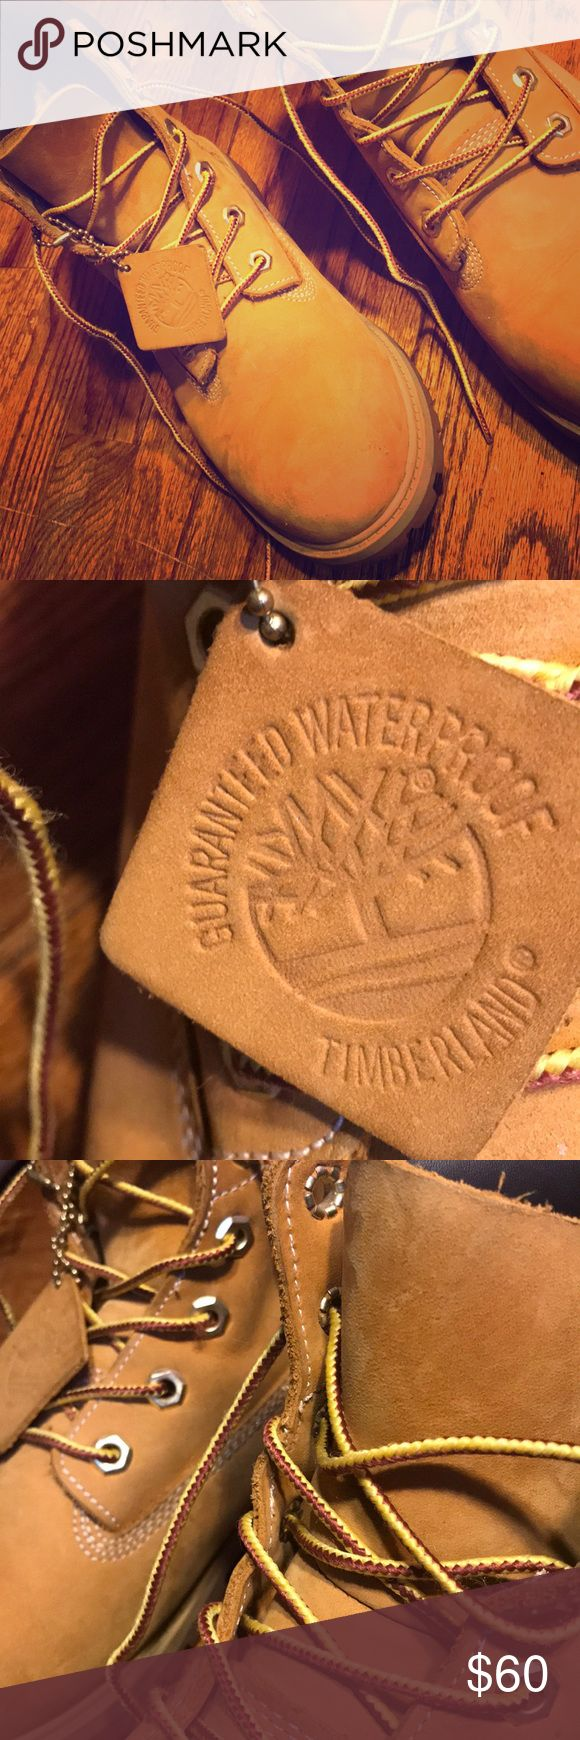 Classic Timberland Boots Wheat Timberland Boots Timberland Shoes Boots